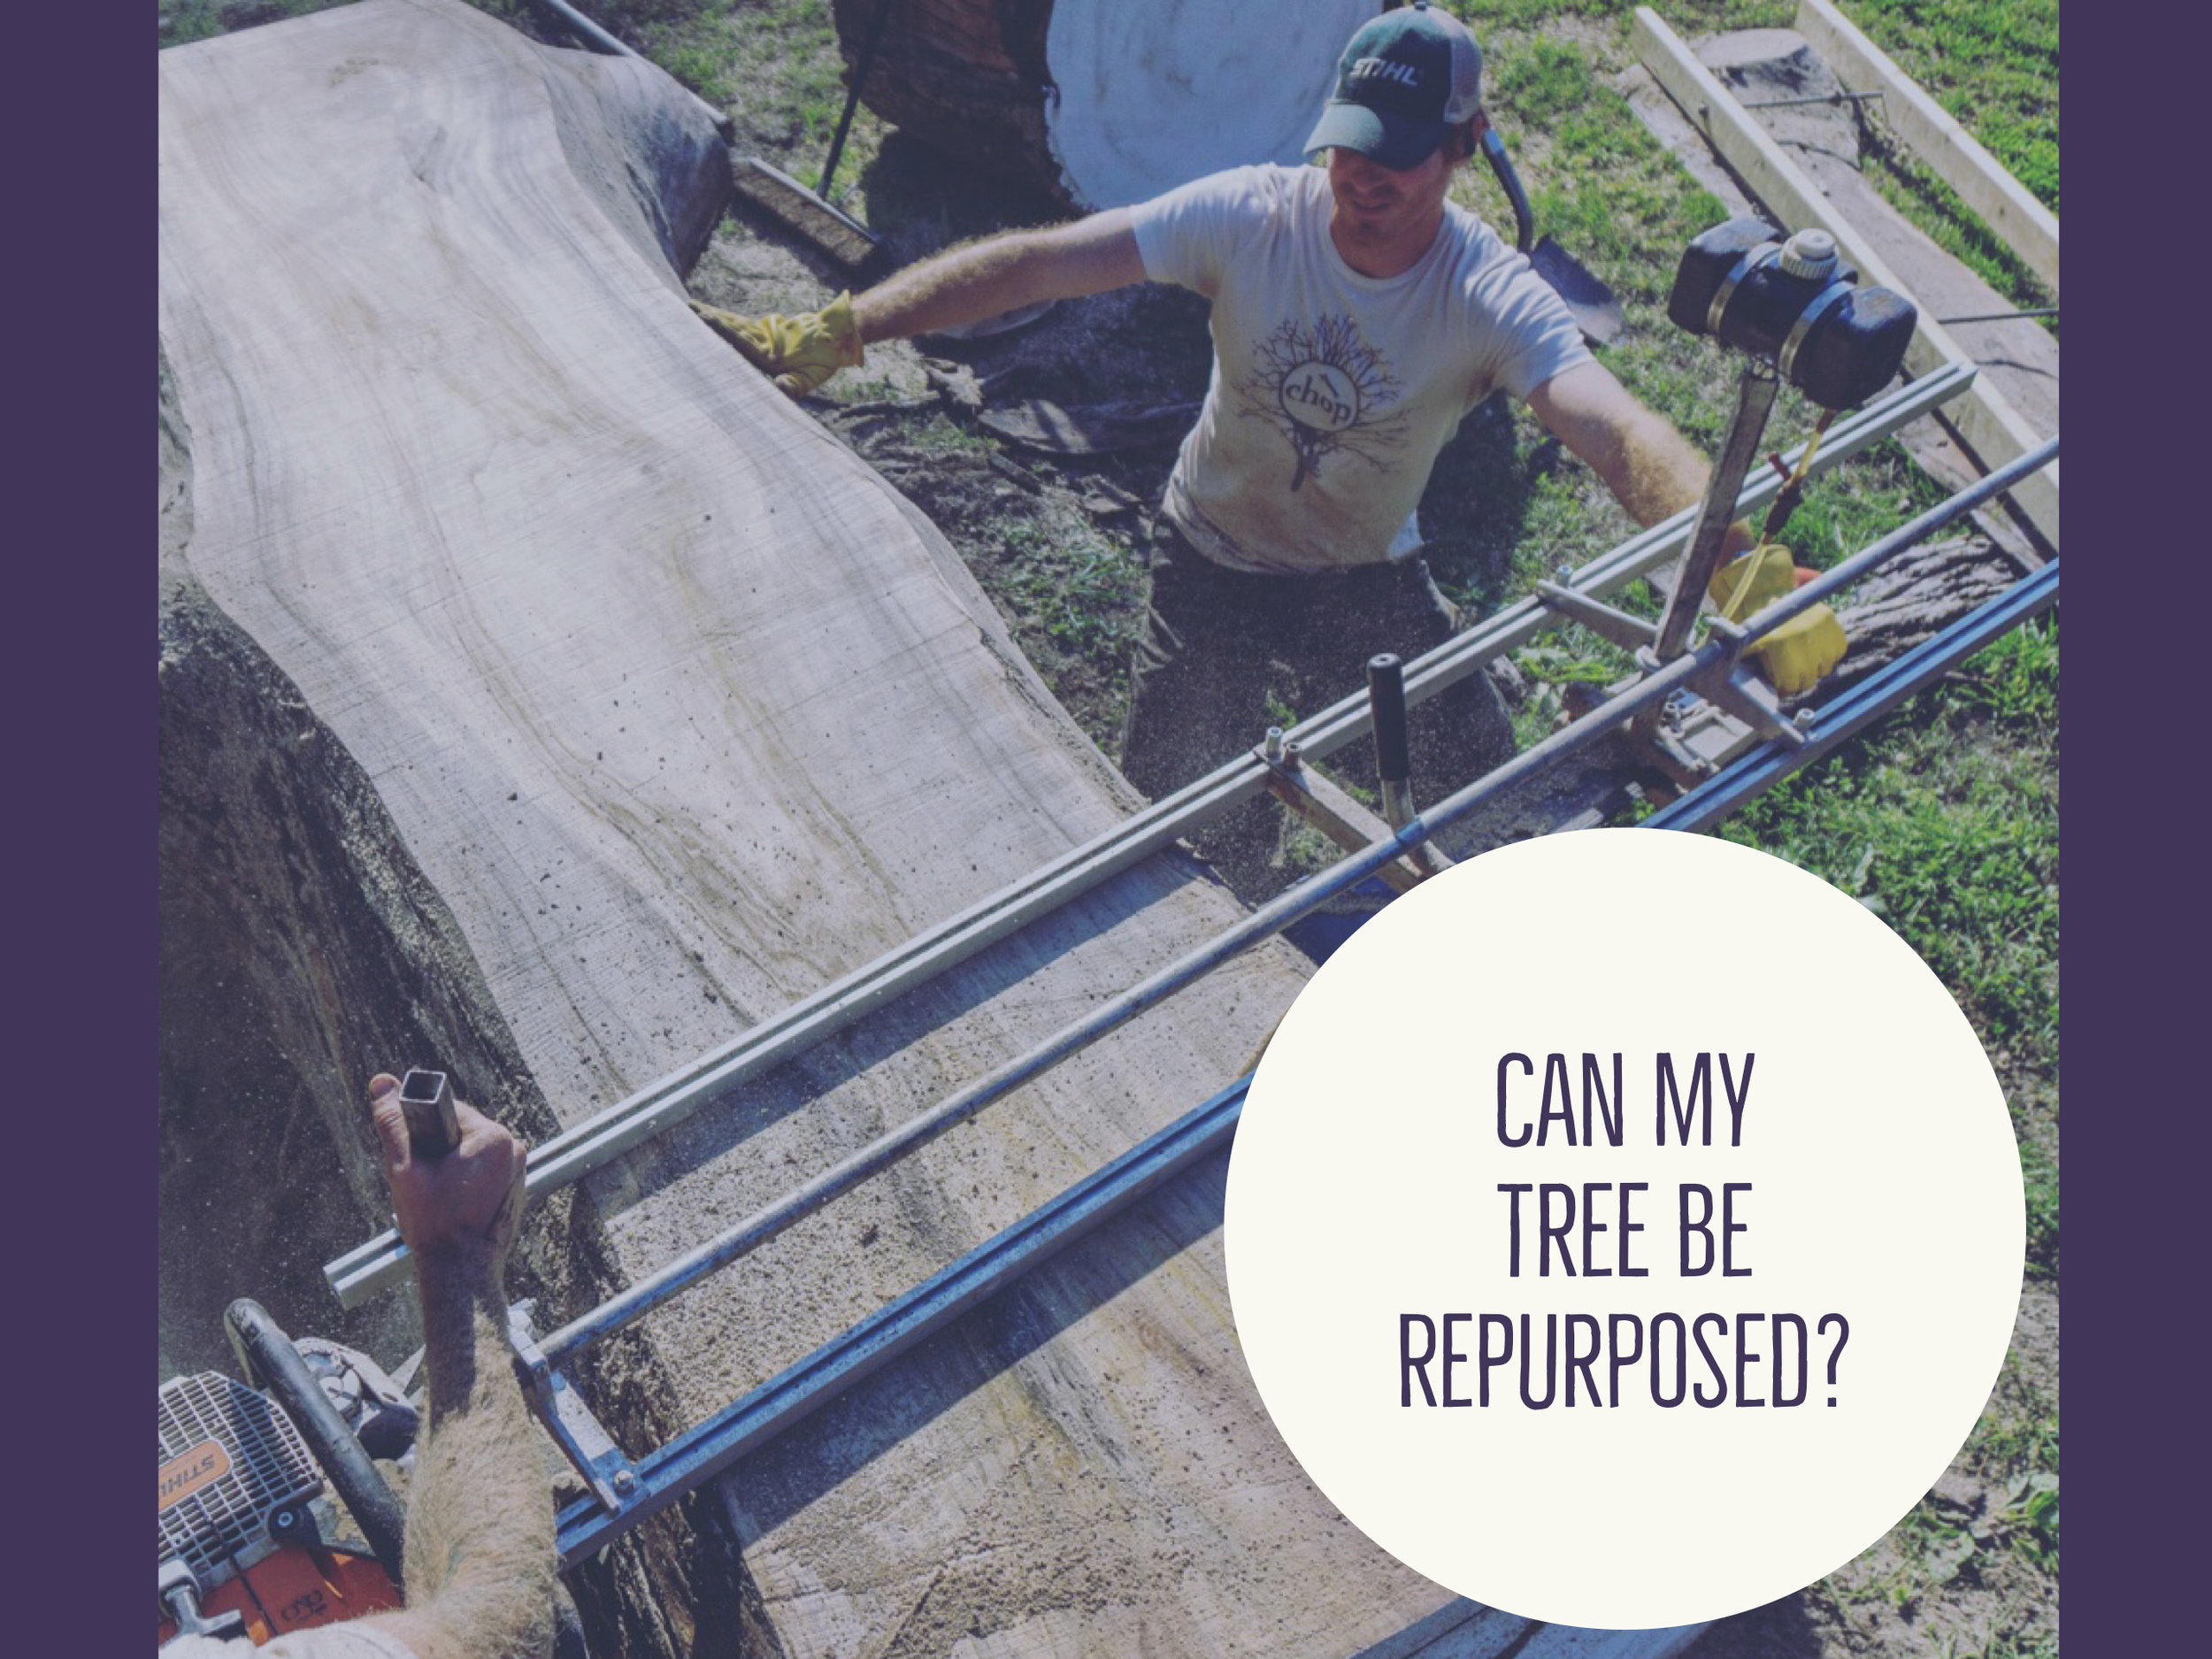 A salvageable tree is - - Almost any size or shape walnut tree- Other hardwoods more than 30 inches in diameter- Mostly straight for 8 feet- Not a Hackberry or Bradford Pear- Free of major decay in trunk